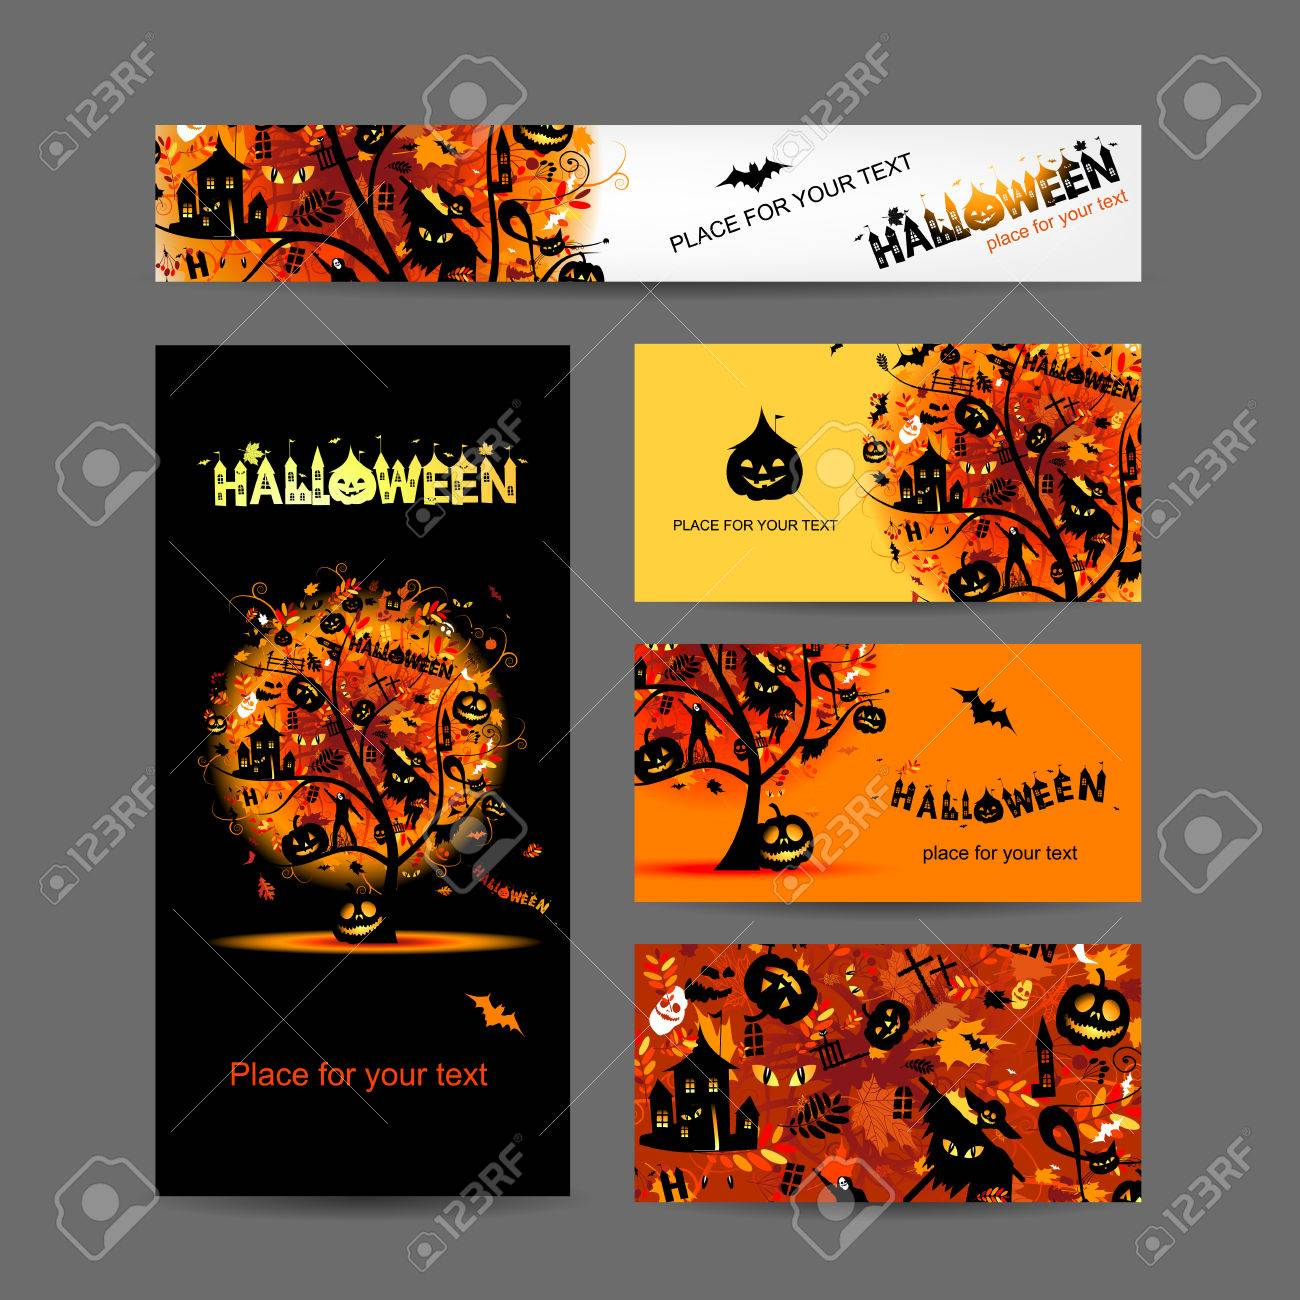 Invitation cards design for halloween party royalty free cliparts invitation cards design for halloween party stock vector 26618963 stopboris Images